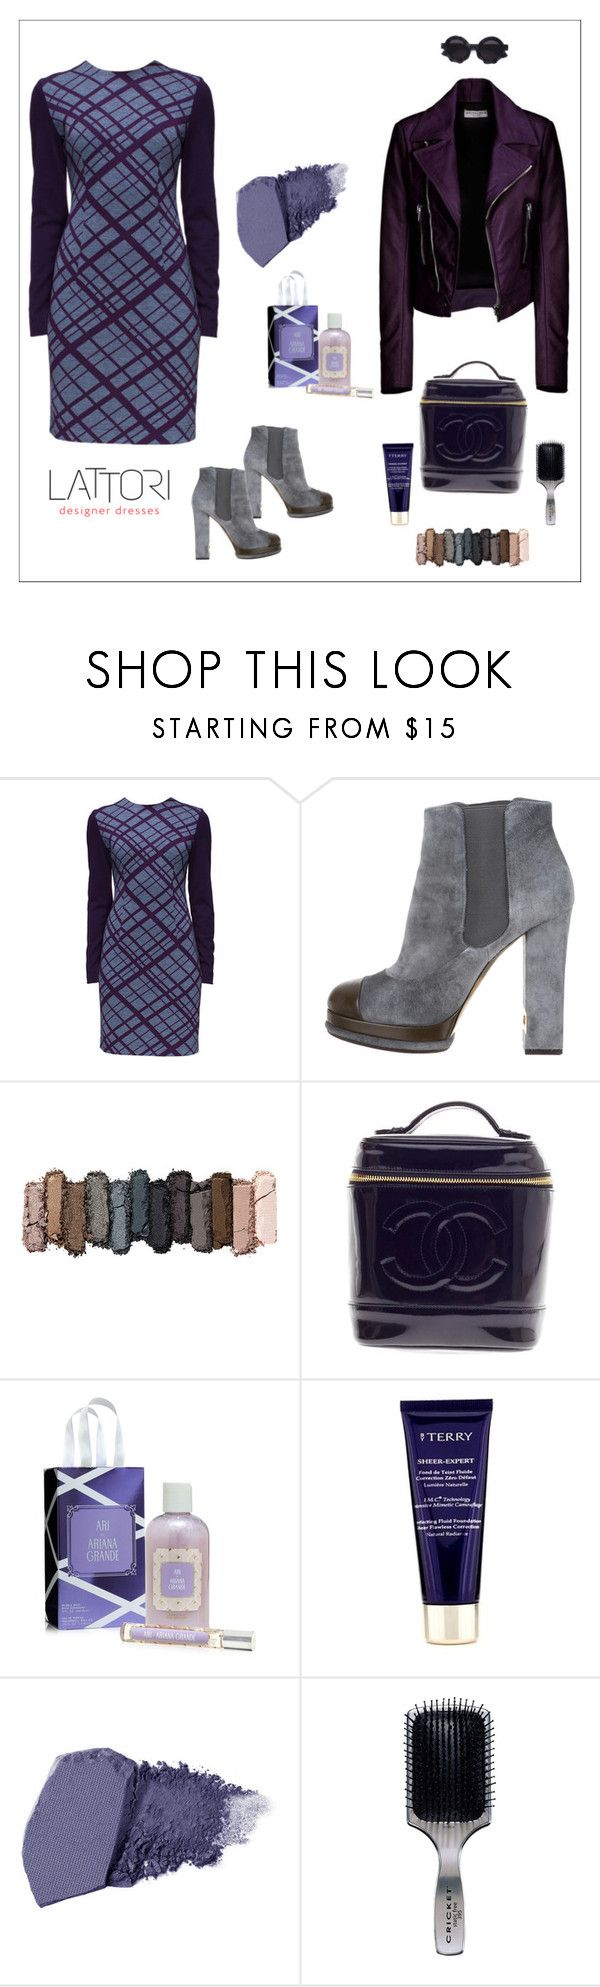 """'Calm Curves' Long Sleeves, Knitted Casual Dress"" by lattori ❤ liked on Polyvore featuring Lattori, Balenciaga, Chanel, Urban Decay, By Terry, Jane Iredale, Cricket, Kuboraum, women's clothing and women"